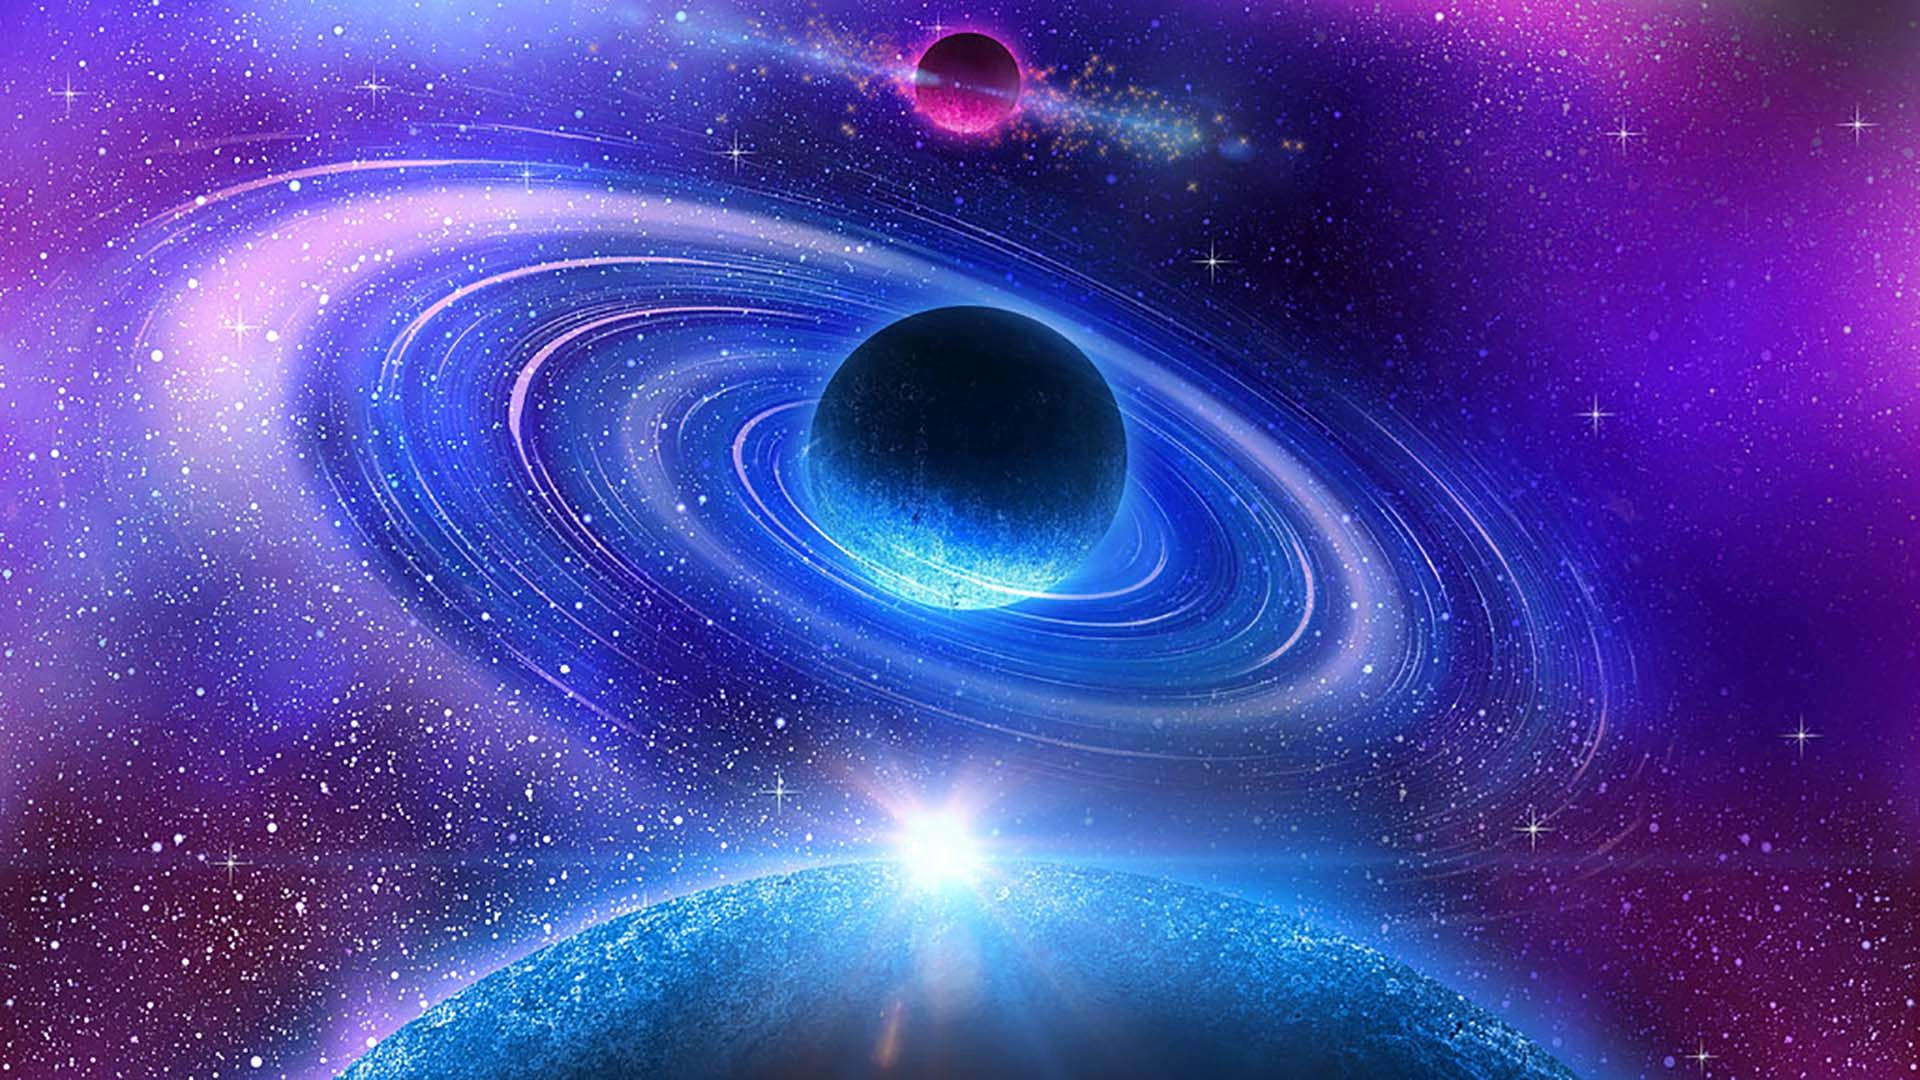 Cool Galaxy wallpapers – Your Favorite Wallpaper